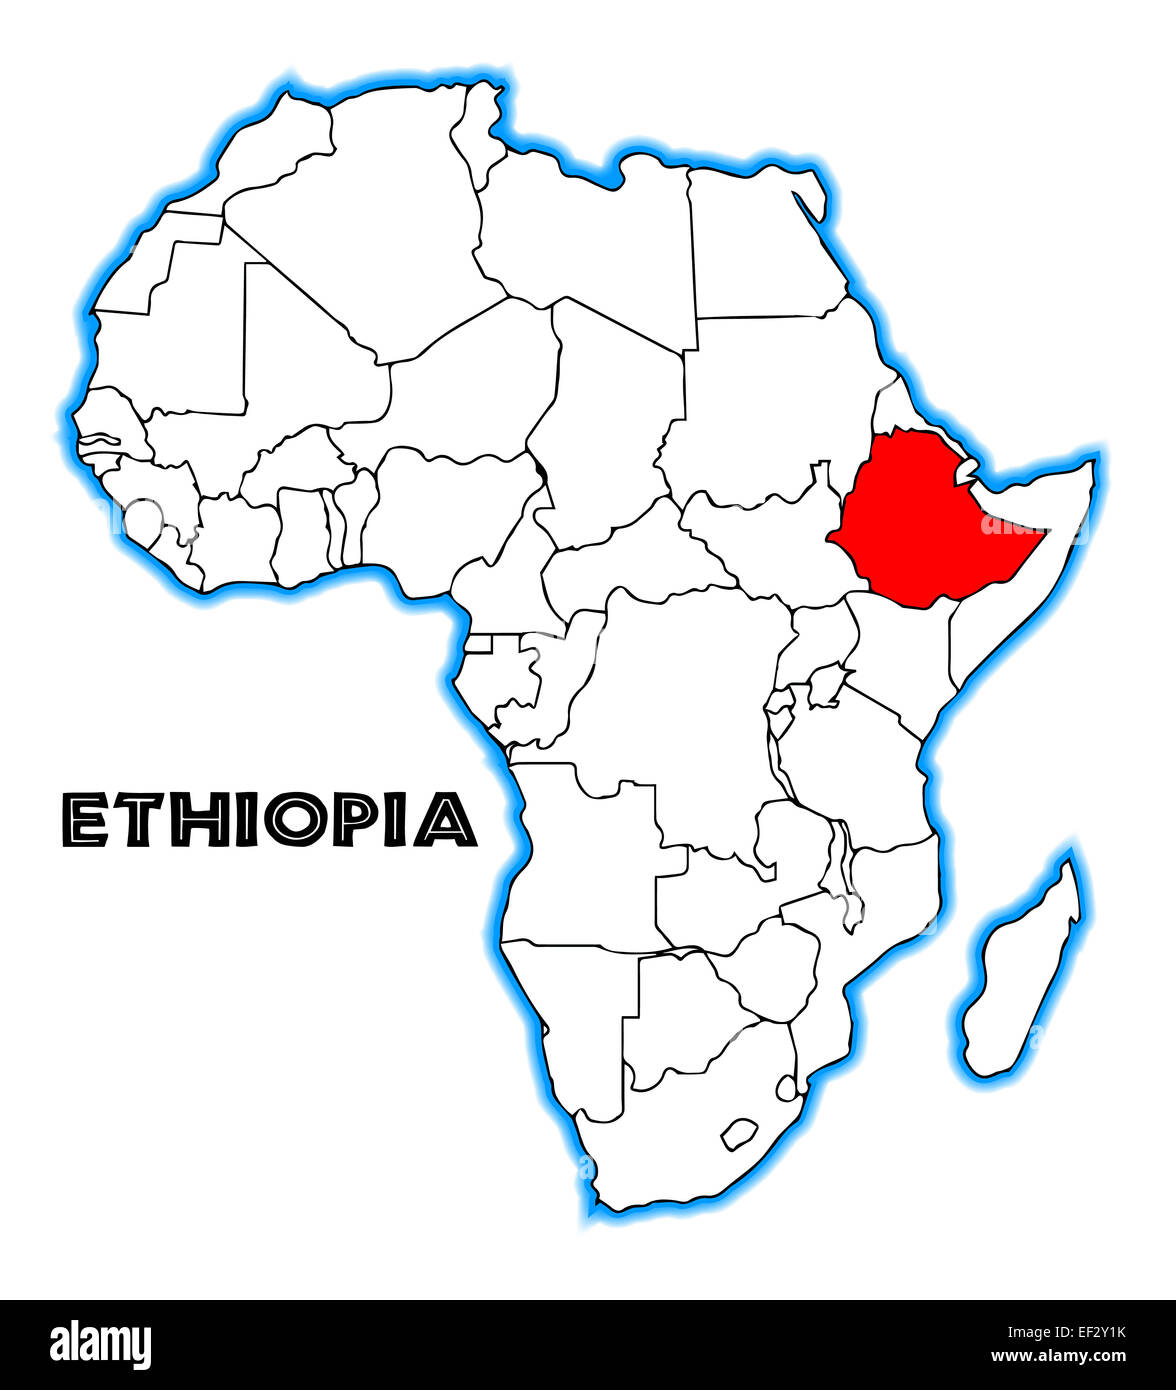 Ethiopia outline inset into a map of Africa over a white background